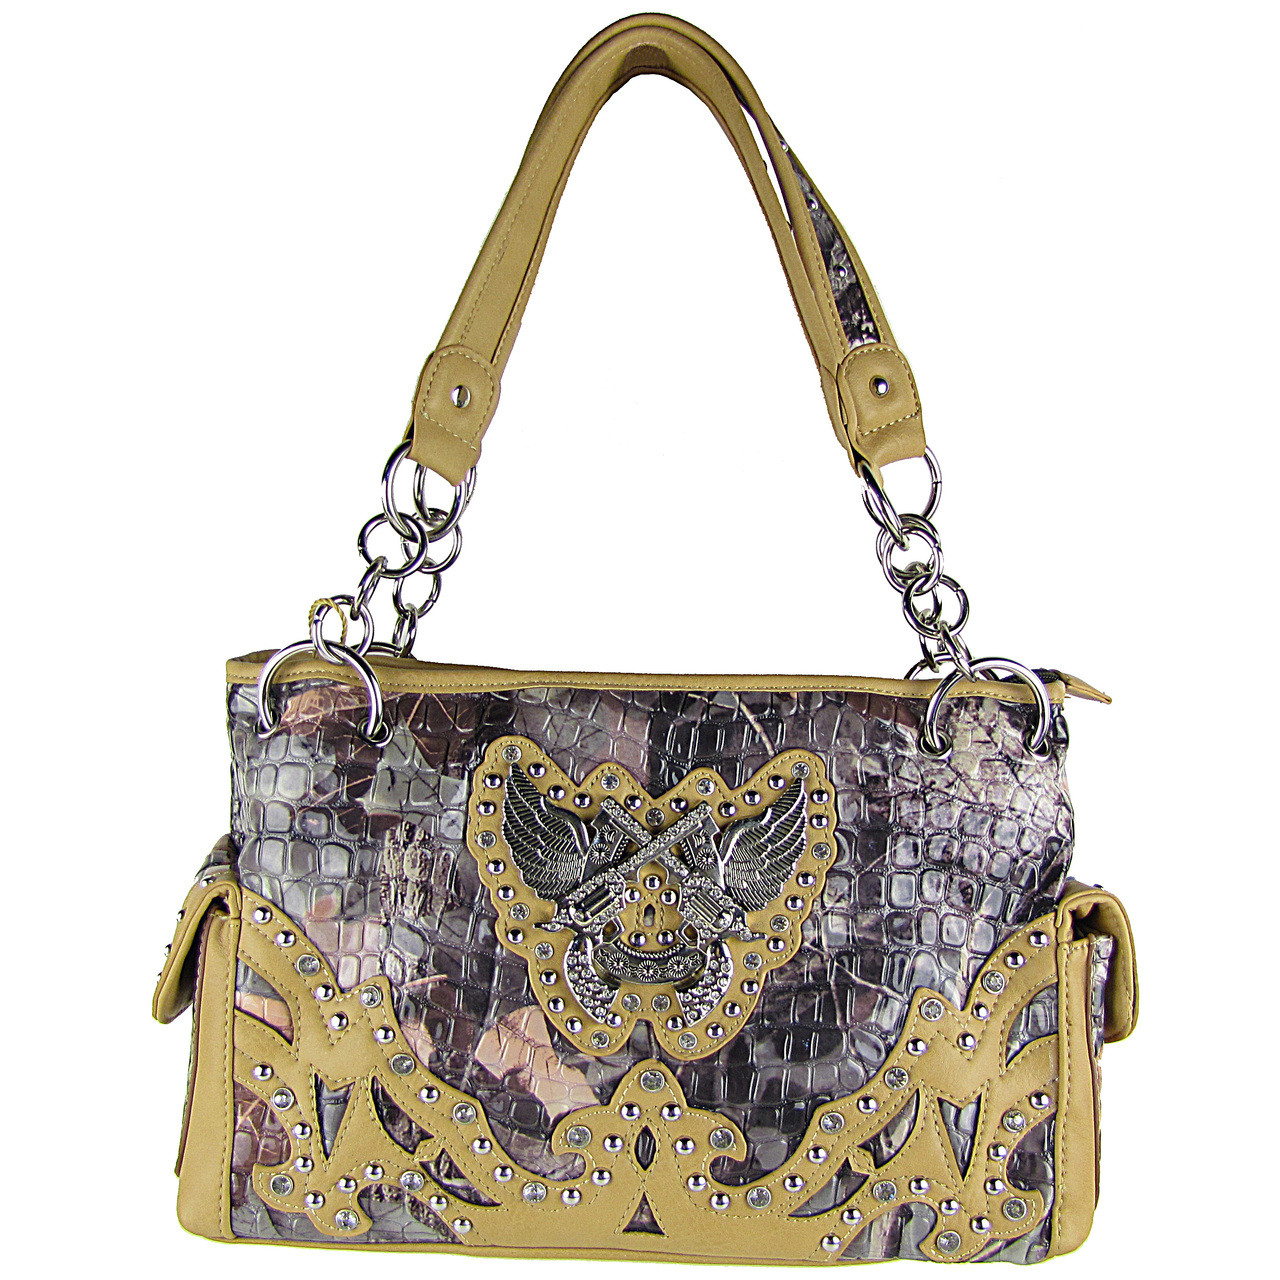 BEIGE CAMO RHINESTONE HORSESHOE WITH WINGS AND PISTOLS LOOK SHOULDER HANDBAG HB1-HH405-10BEI